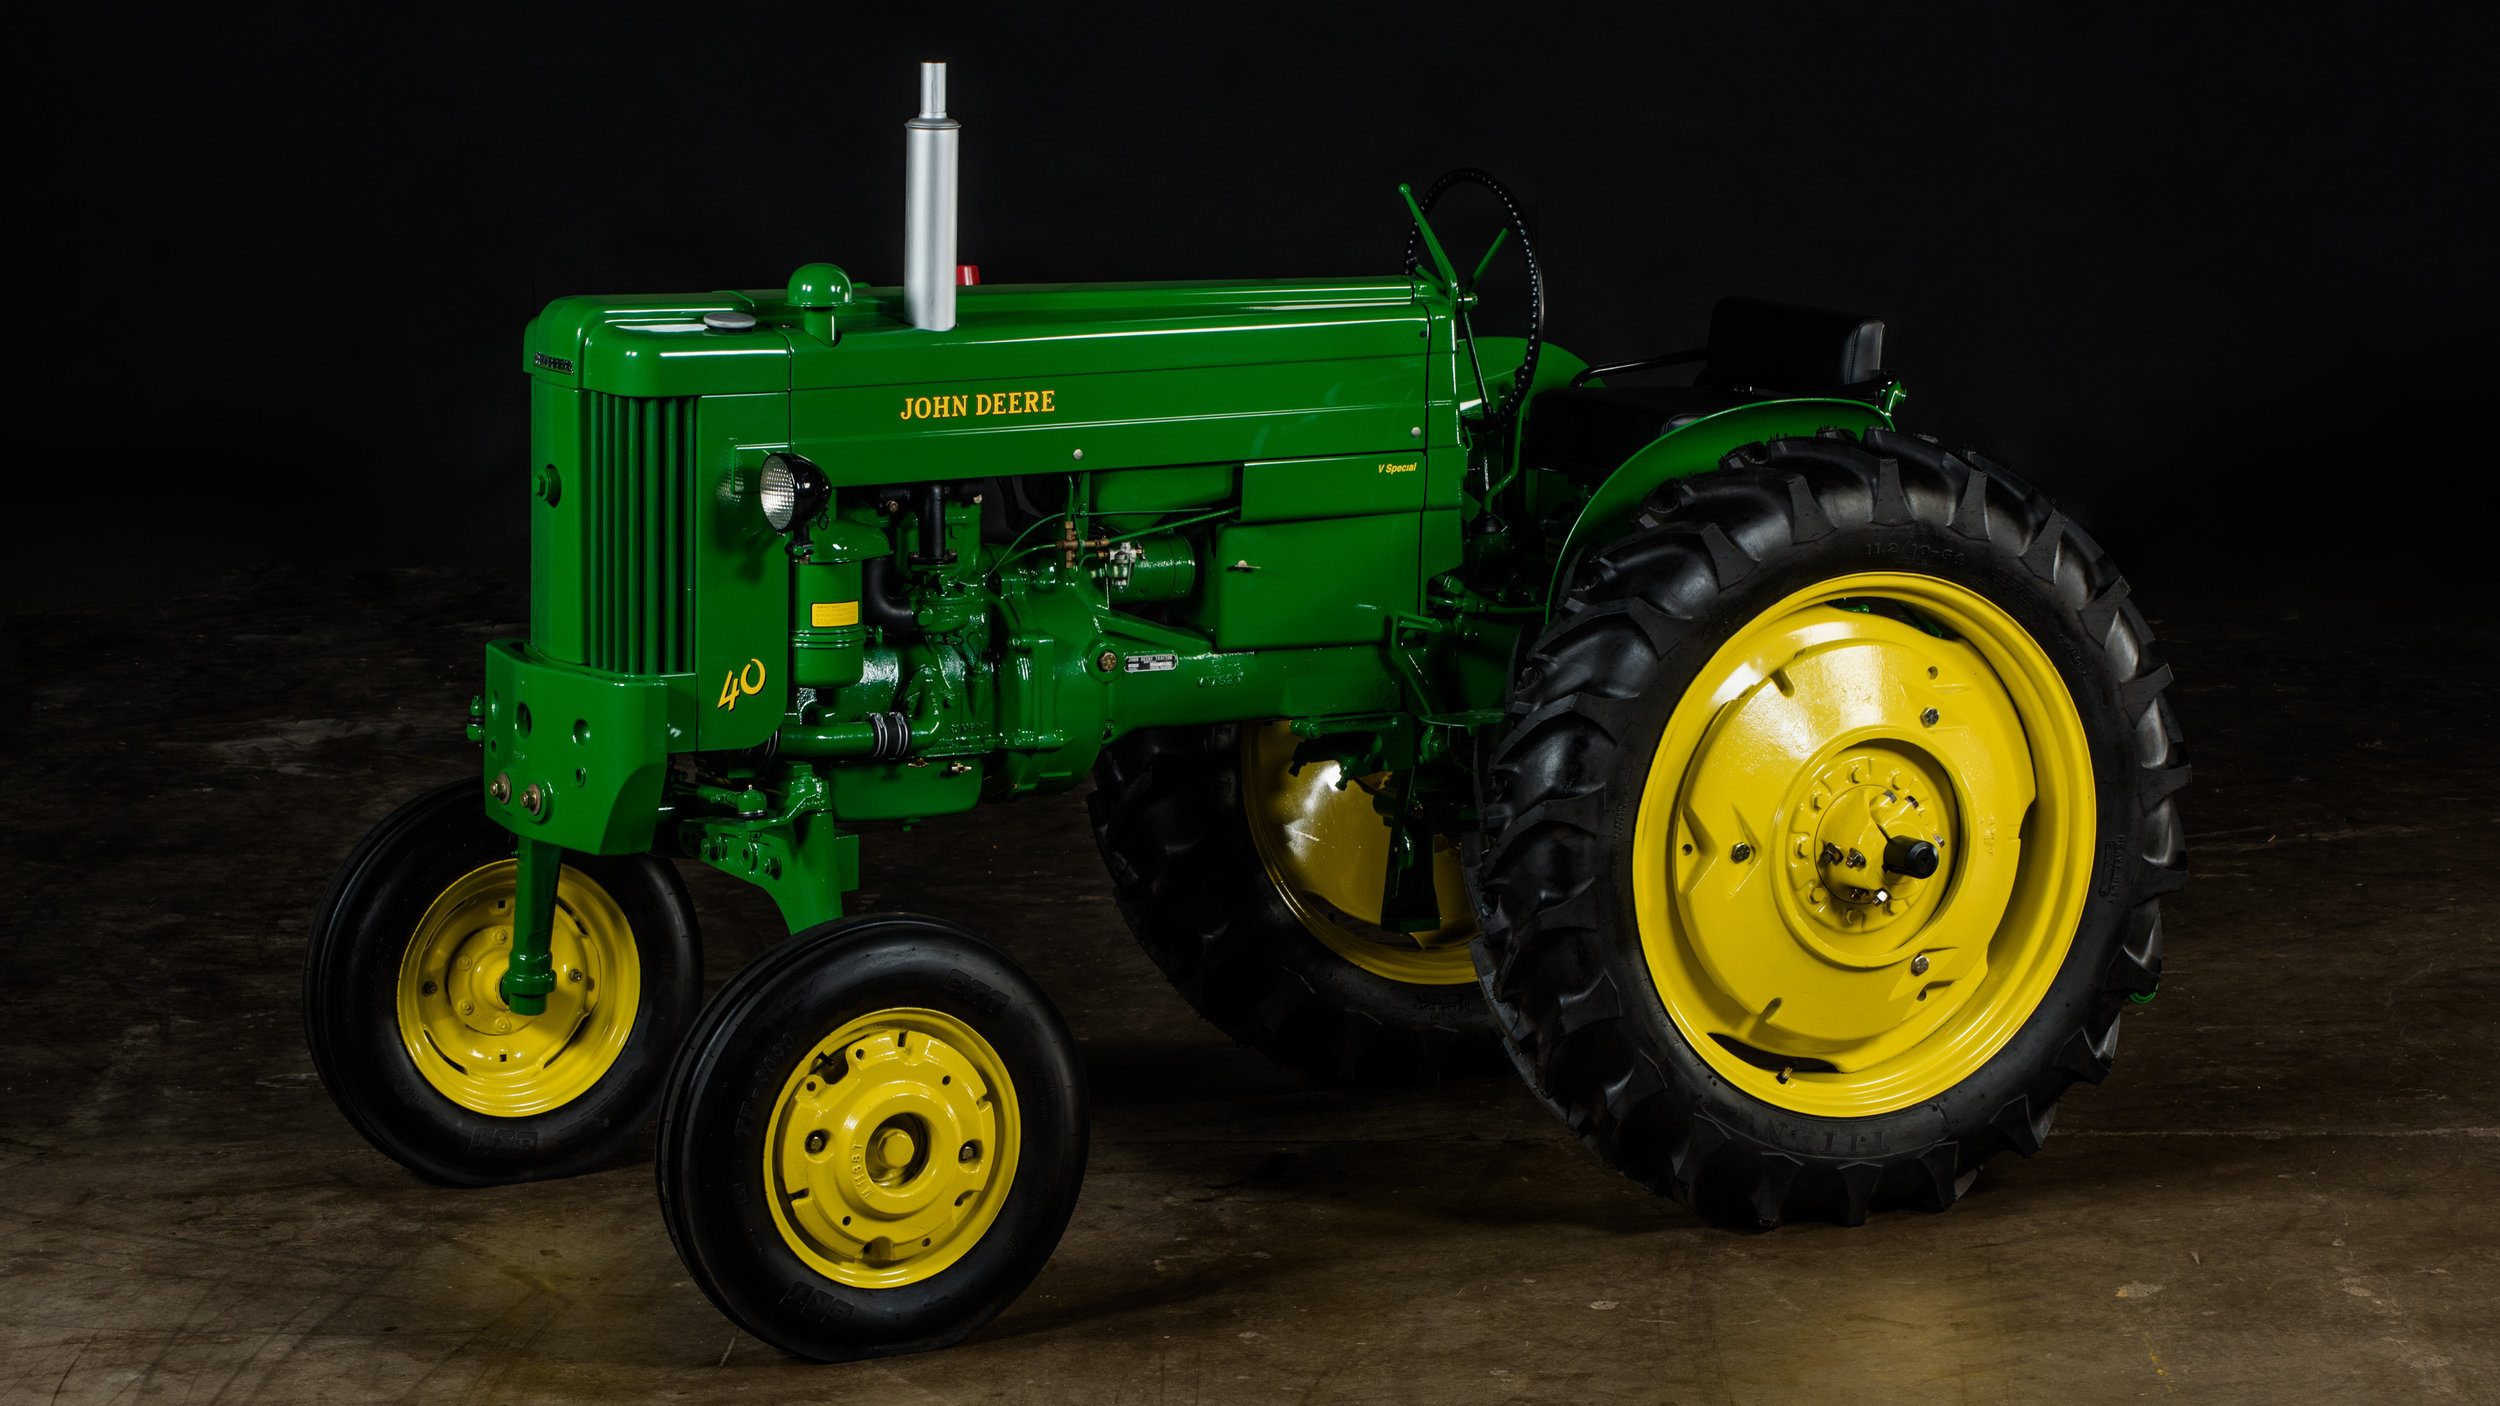 Up for auction is this John Deere 1960 40V All Fuel.   Mecum Auctions